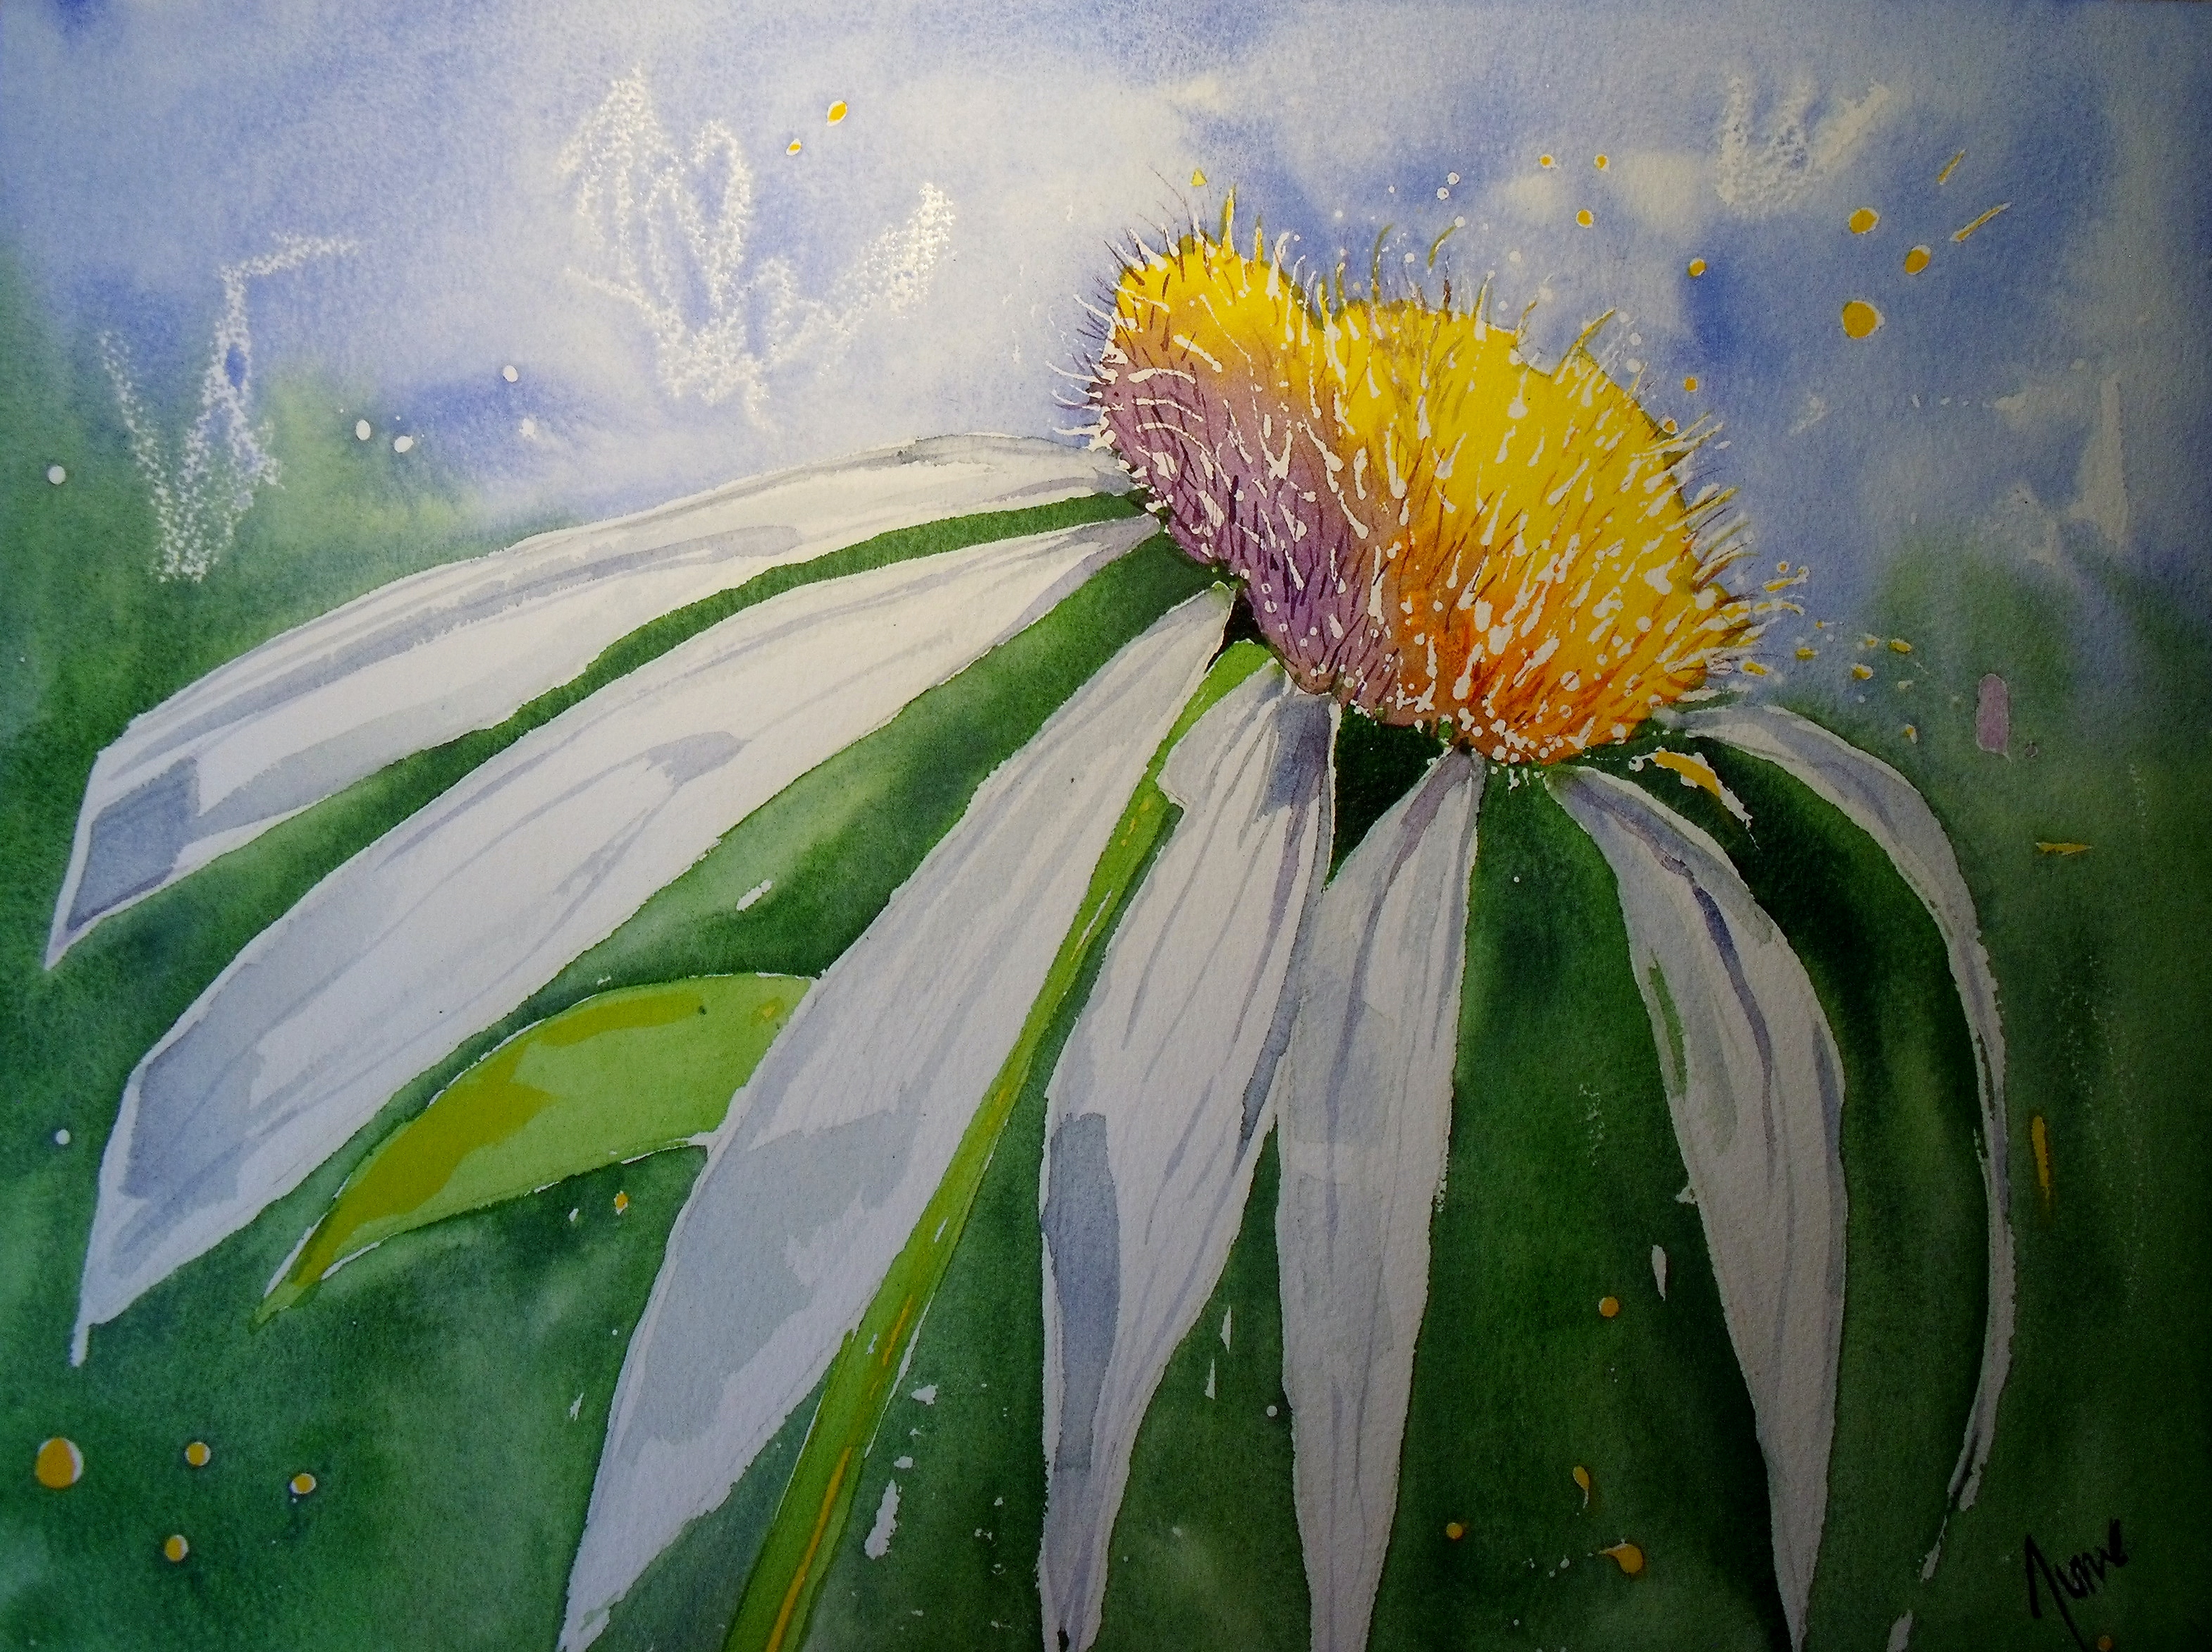 Daisy for Matt & Gemma - Sold